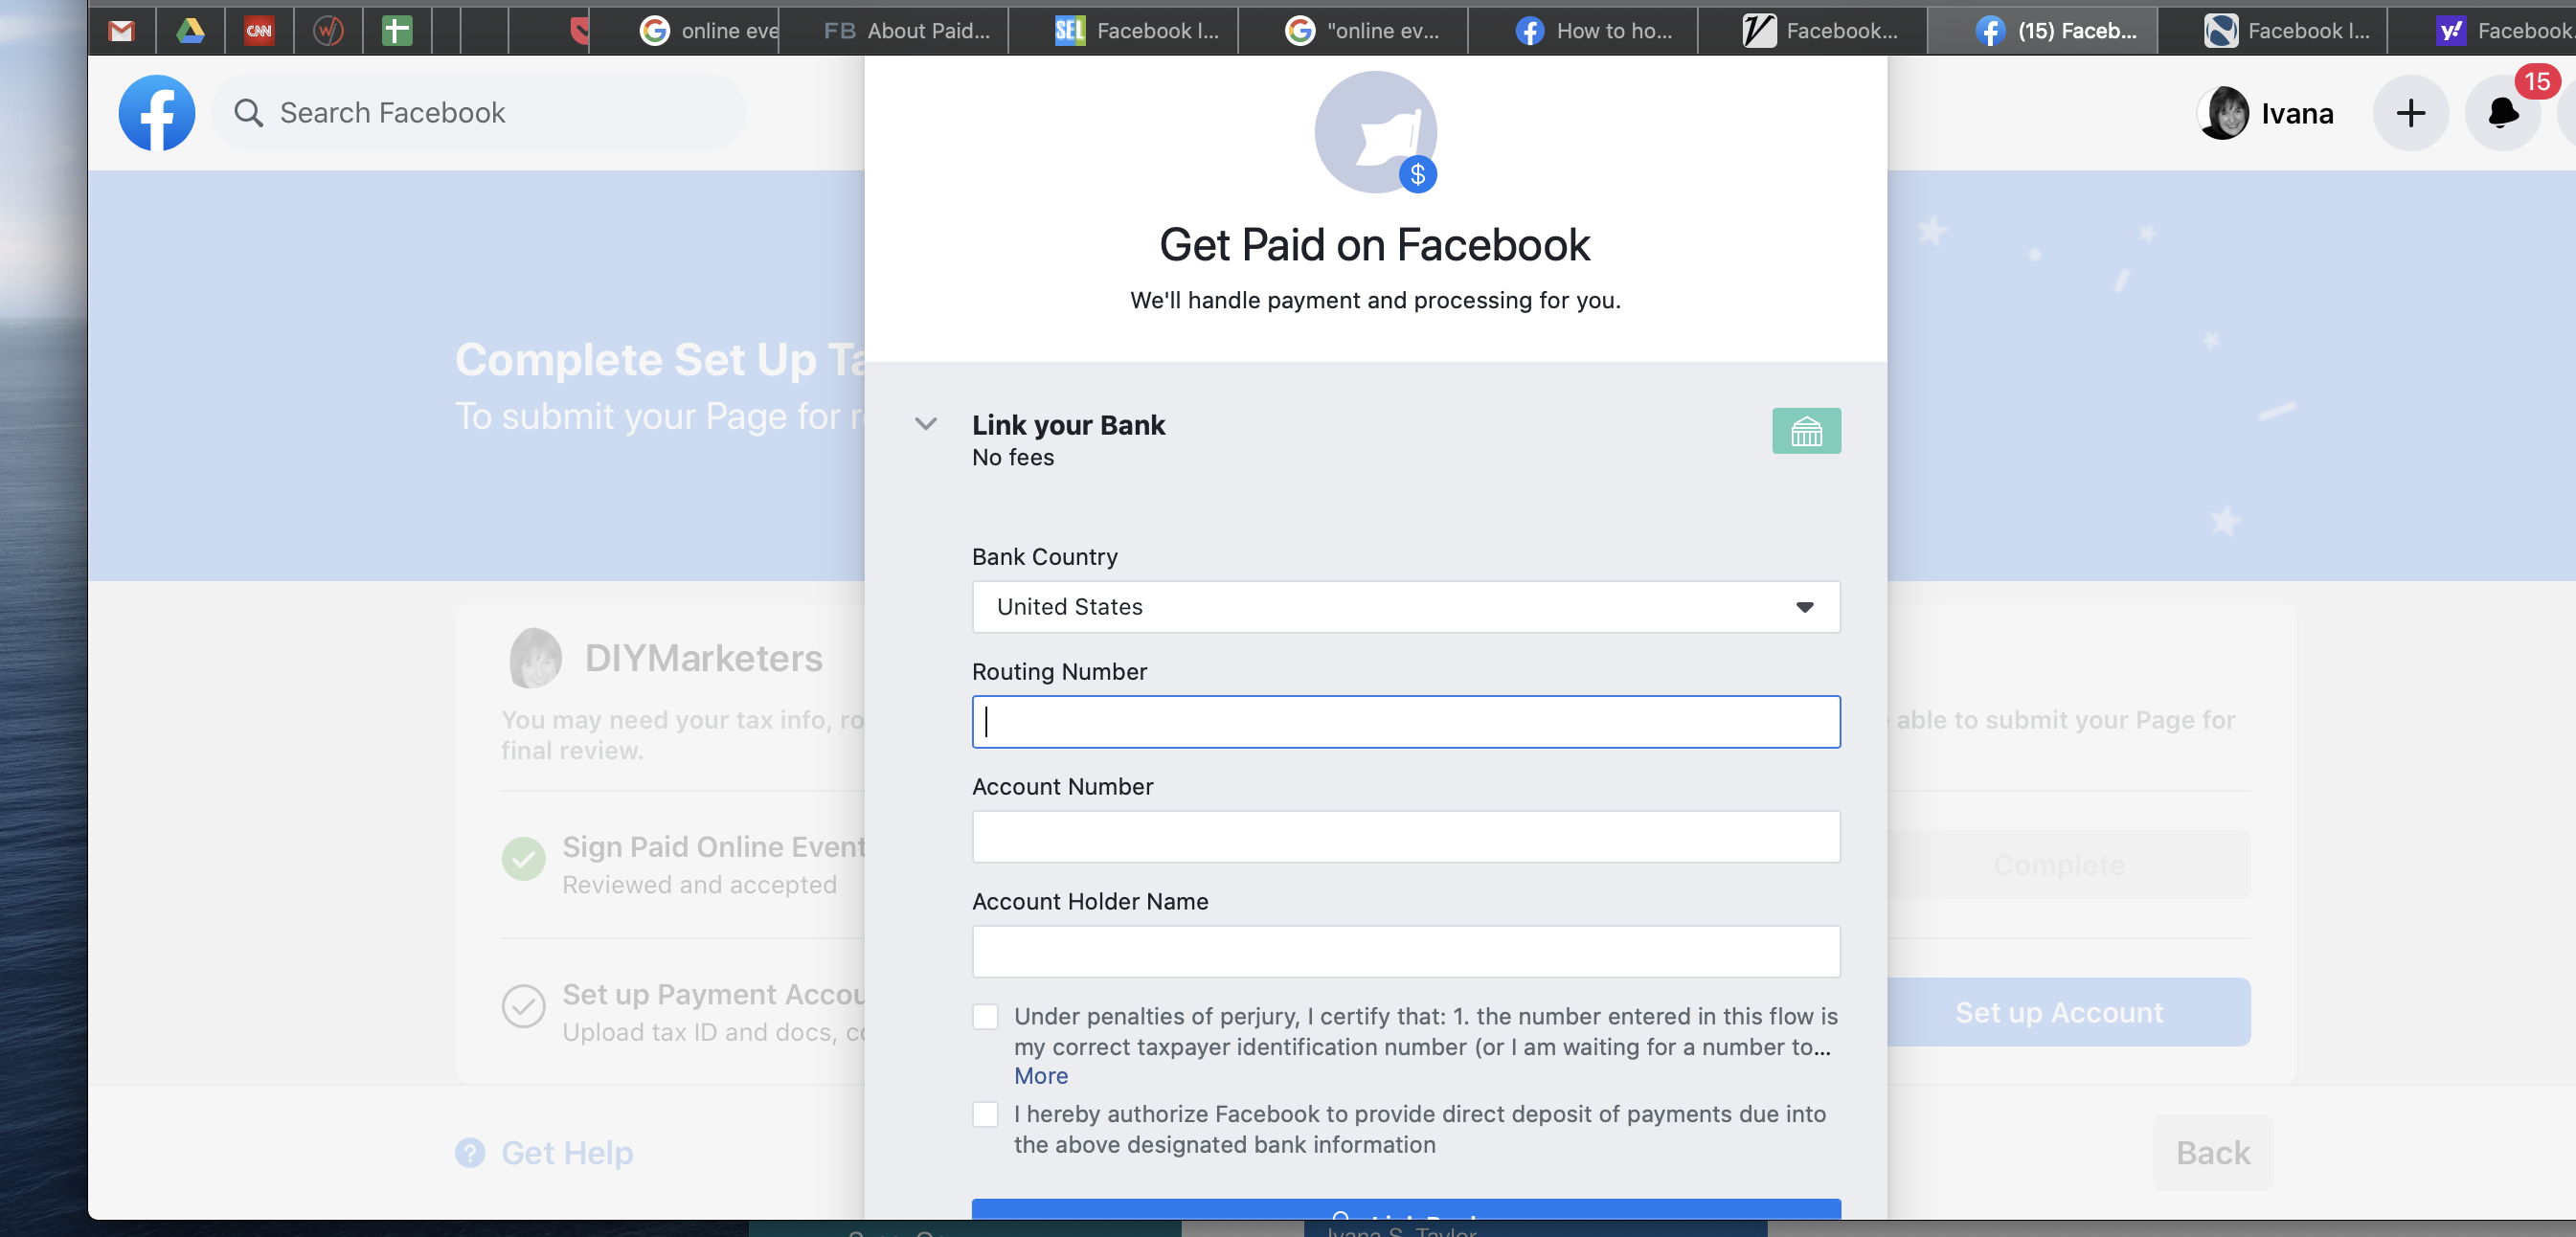 setting up Facebook online events, set up your payment either to your bank or to PayPal